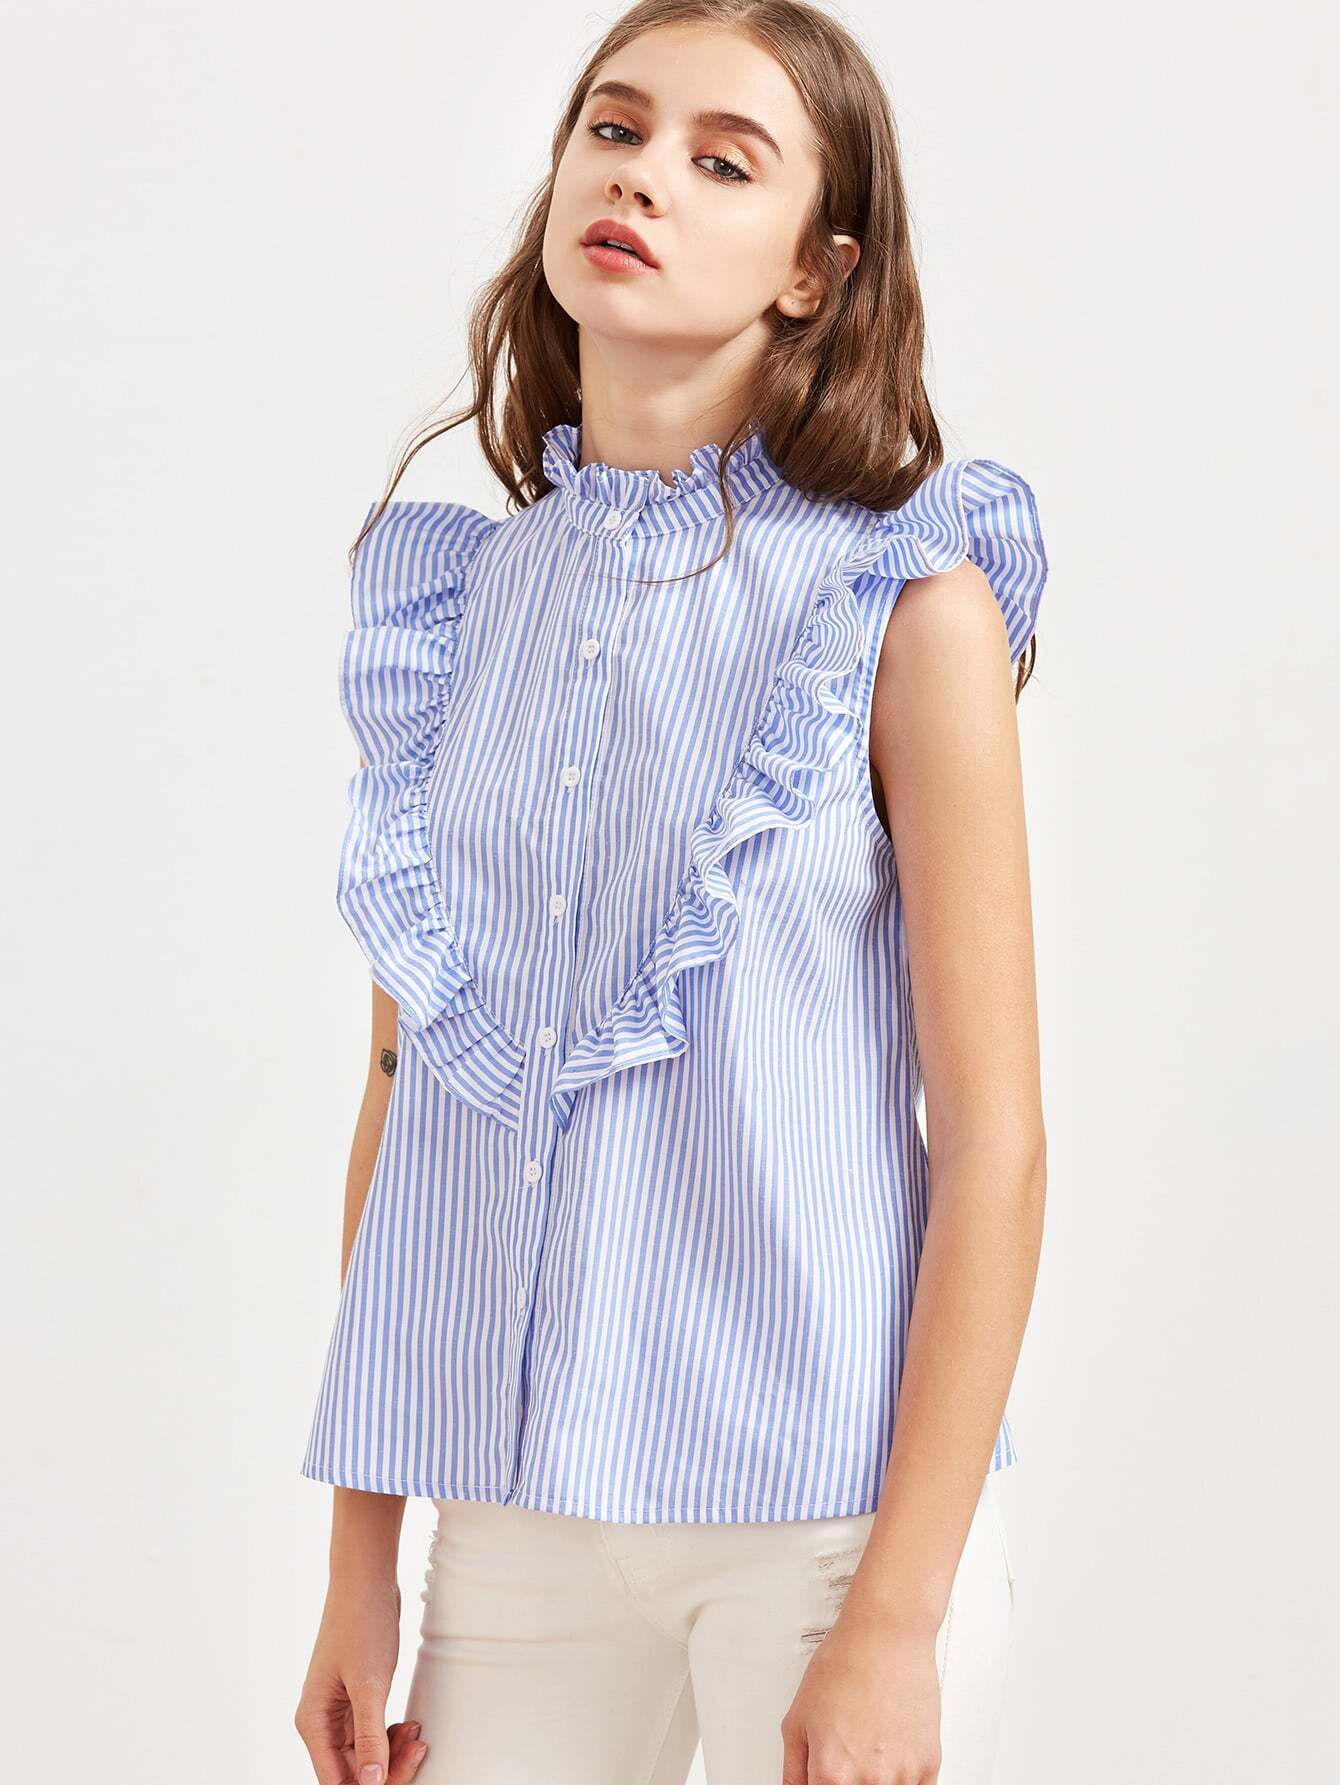 Blue Striped Ruffle Detail Sleeveless Blouse blouse170213712